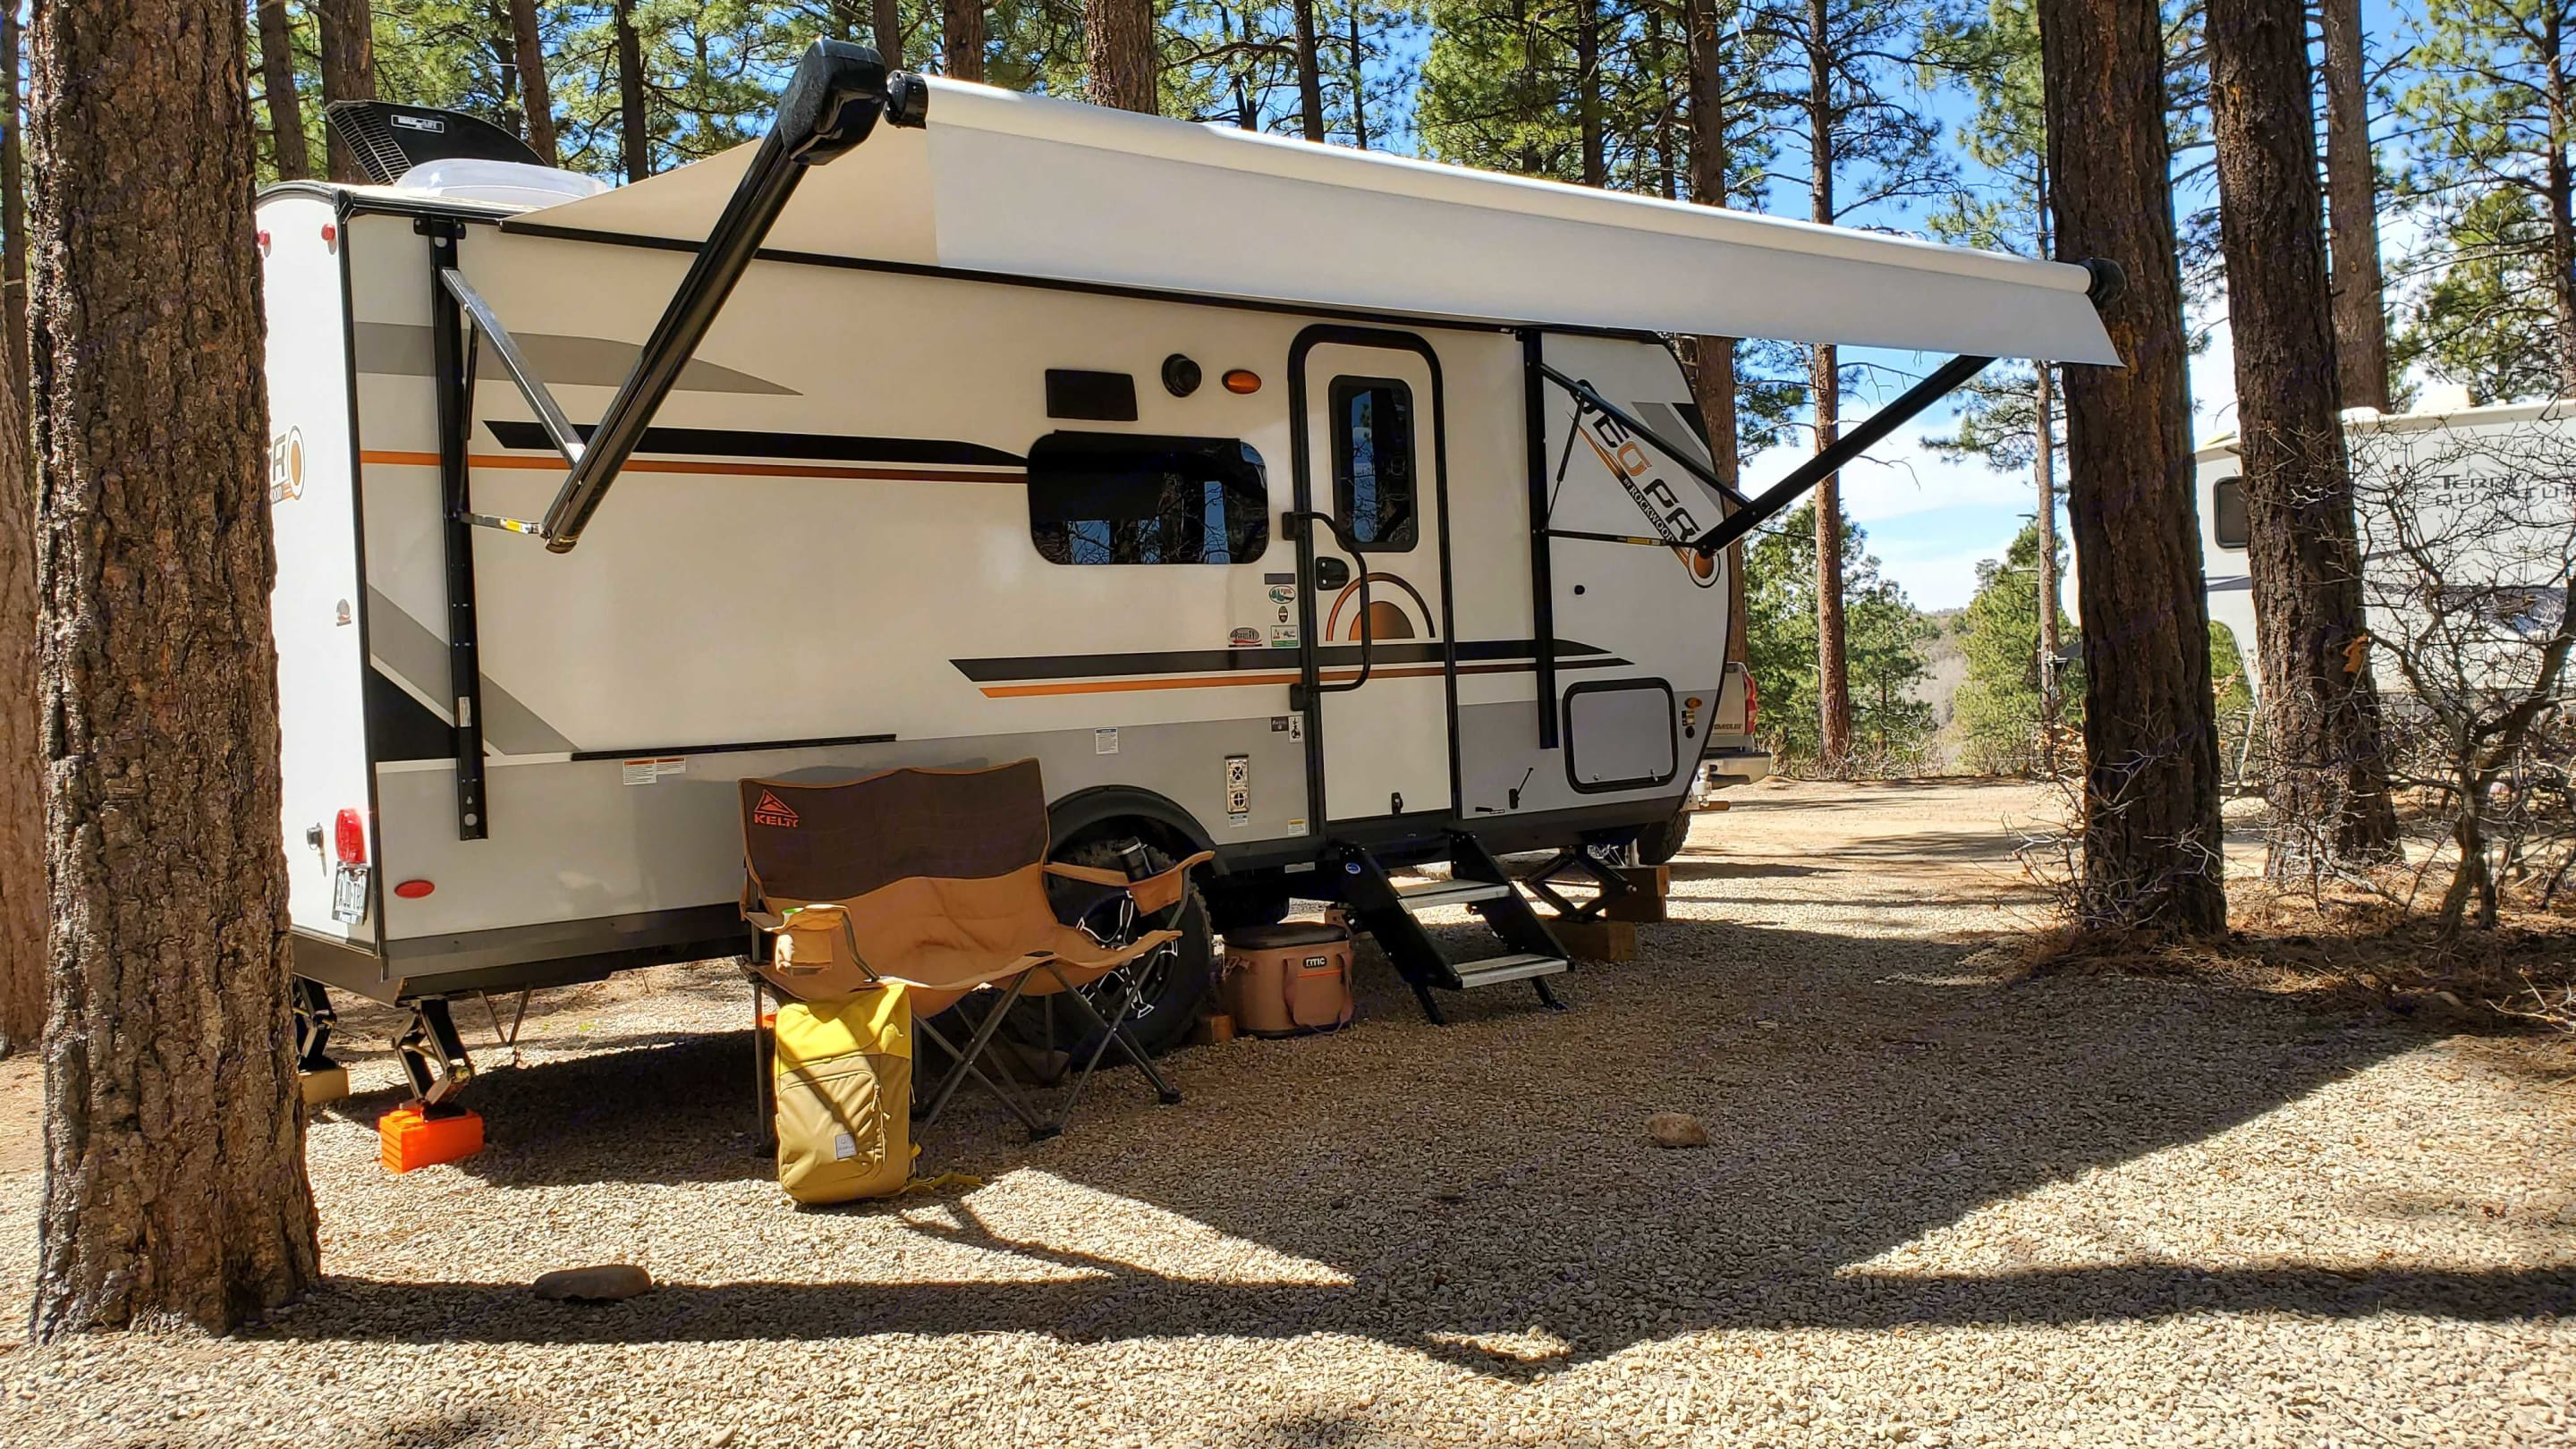 Electric awning makes deployment a snap!  Adjust angles for increased shade. Push the button to stow away (don't leave awning open unattended).. Forest River Rockwood Geo Pro 2021